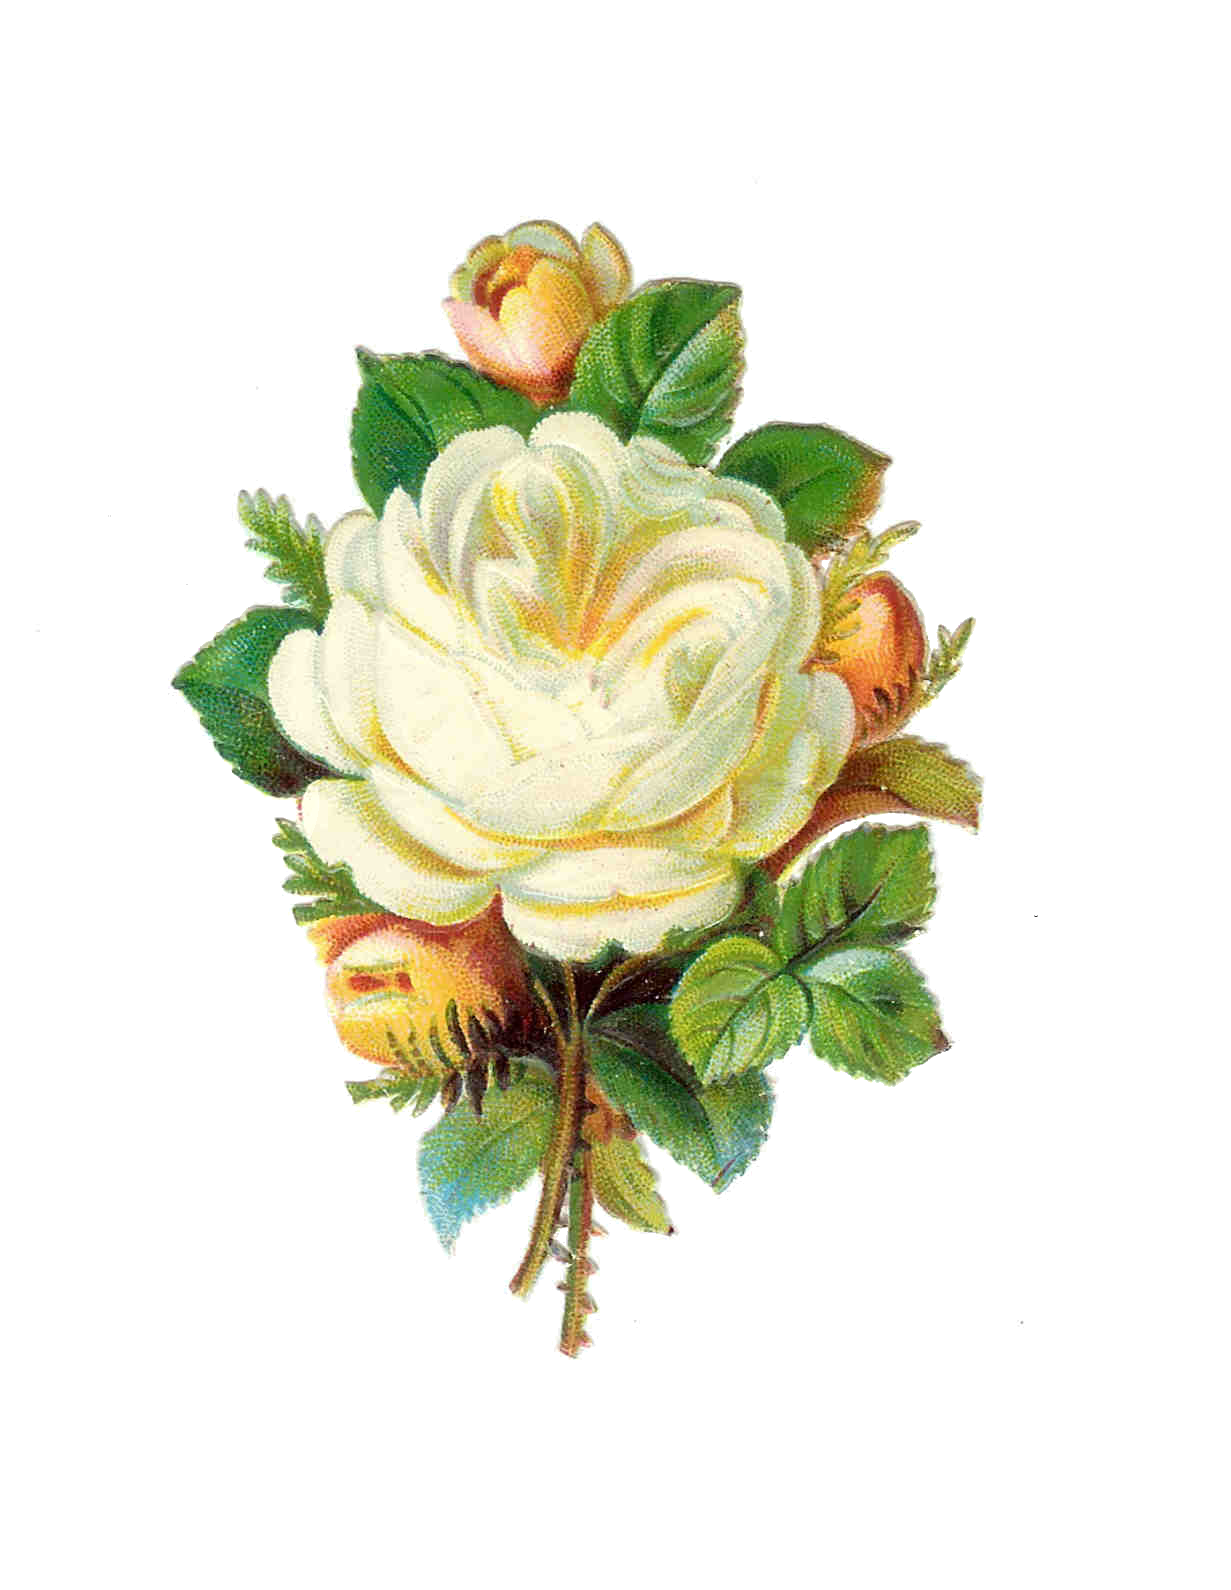 Victorian Rose Png - Free Victorian Rose Pictures, Download F #266631 - PNG Images - PNGio